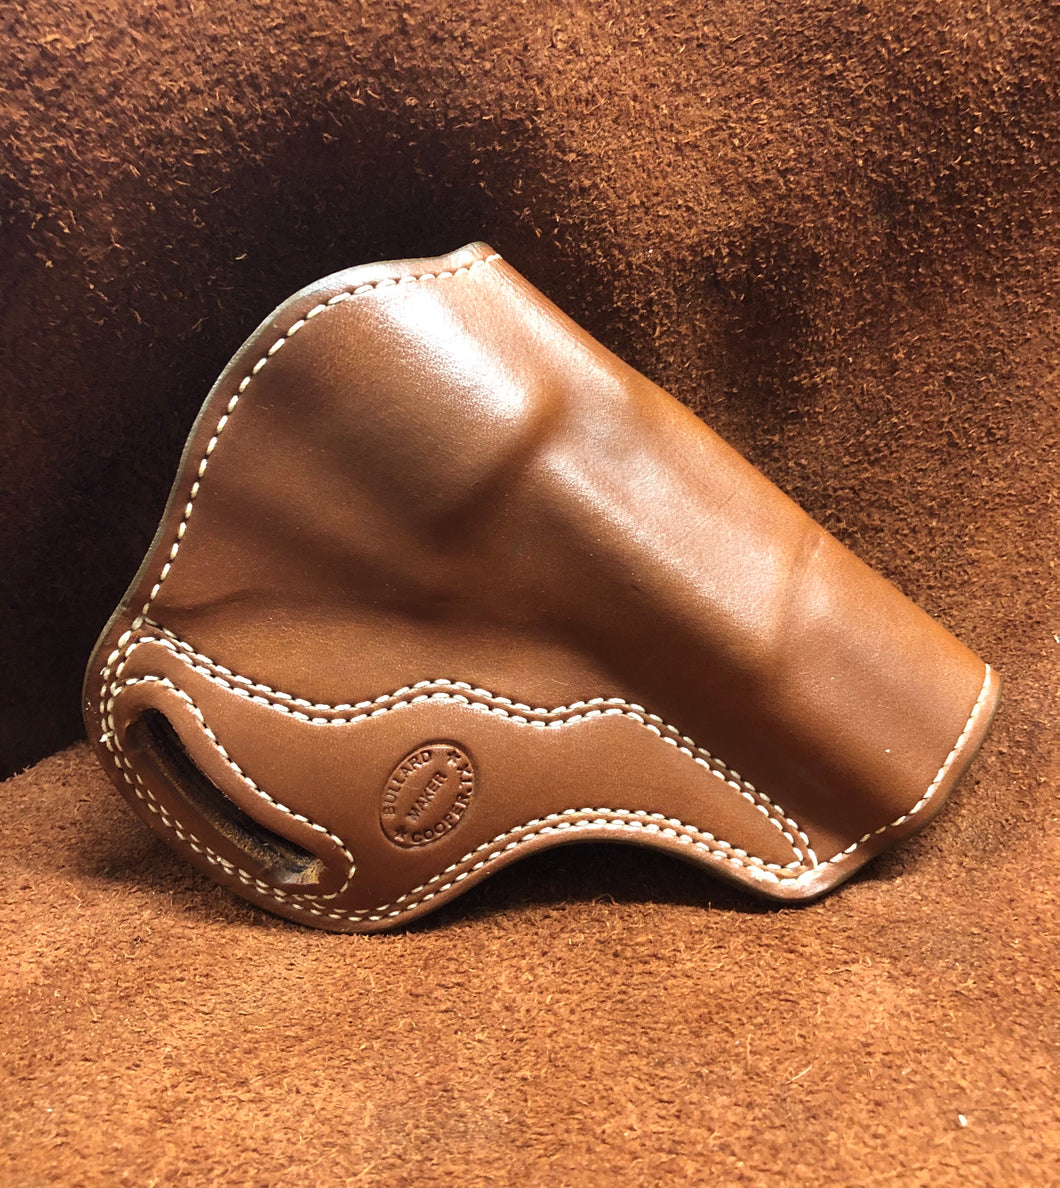 Crossdraw Holster for Charter Arms Pitbull